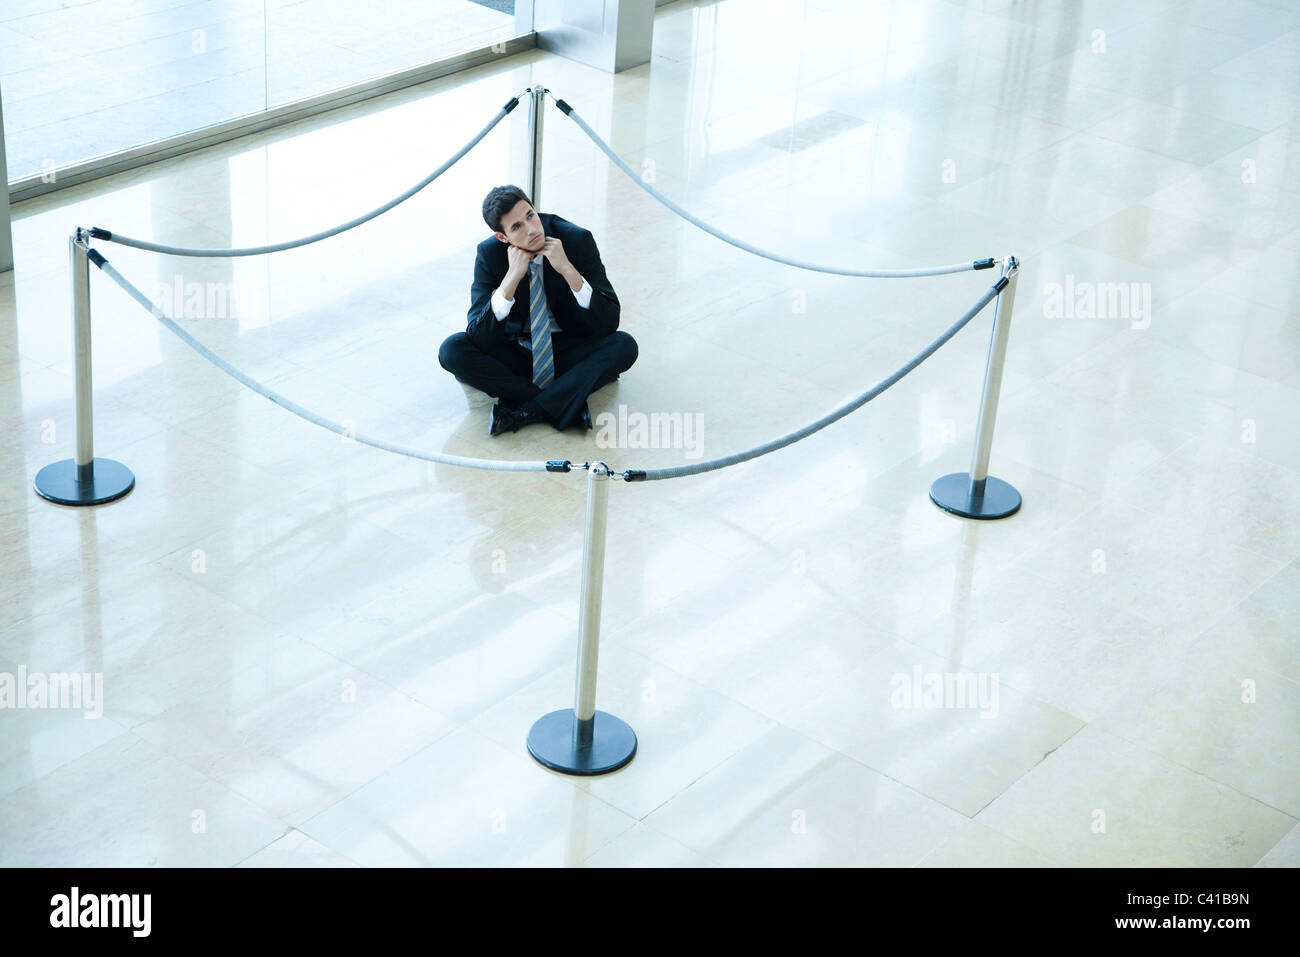 Businessman sitting on floor inside roped off area in lobby - Stock Image